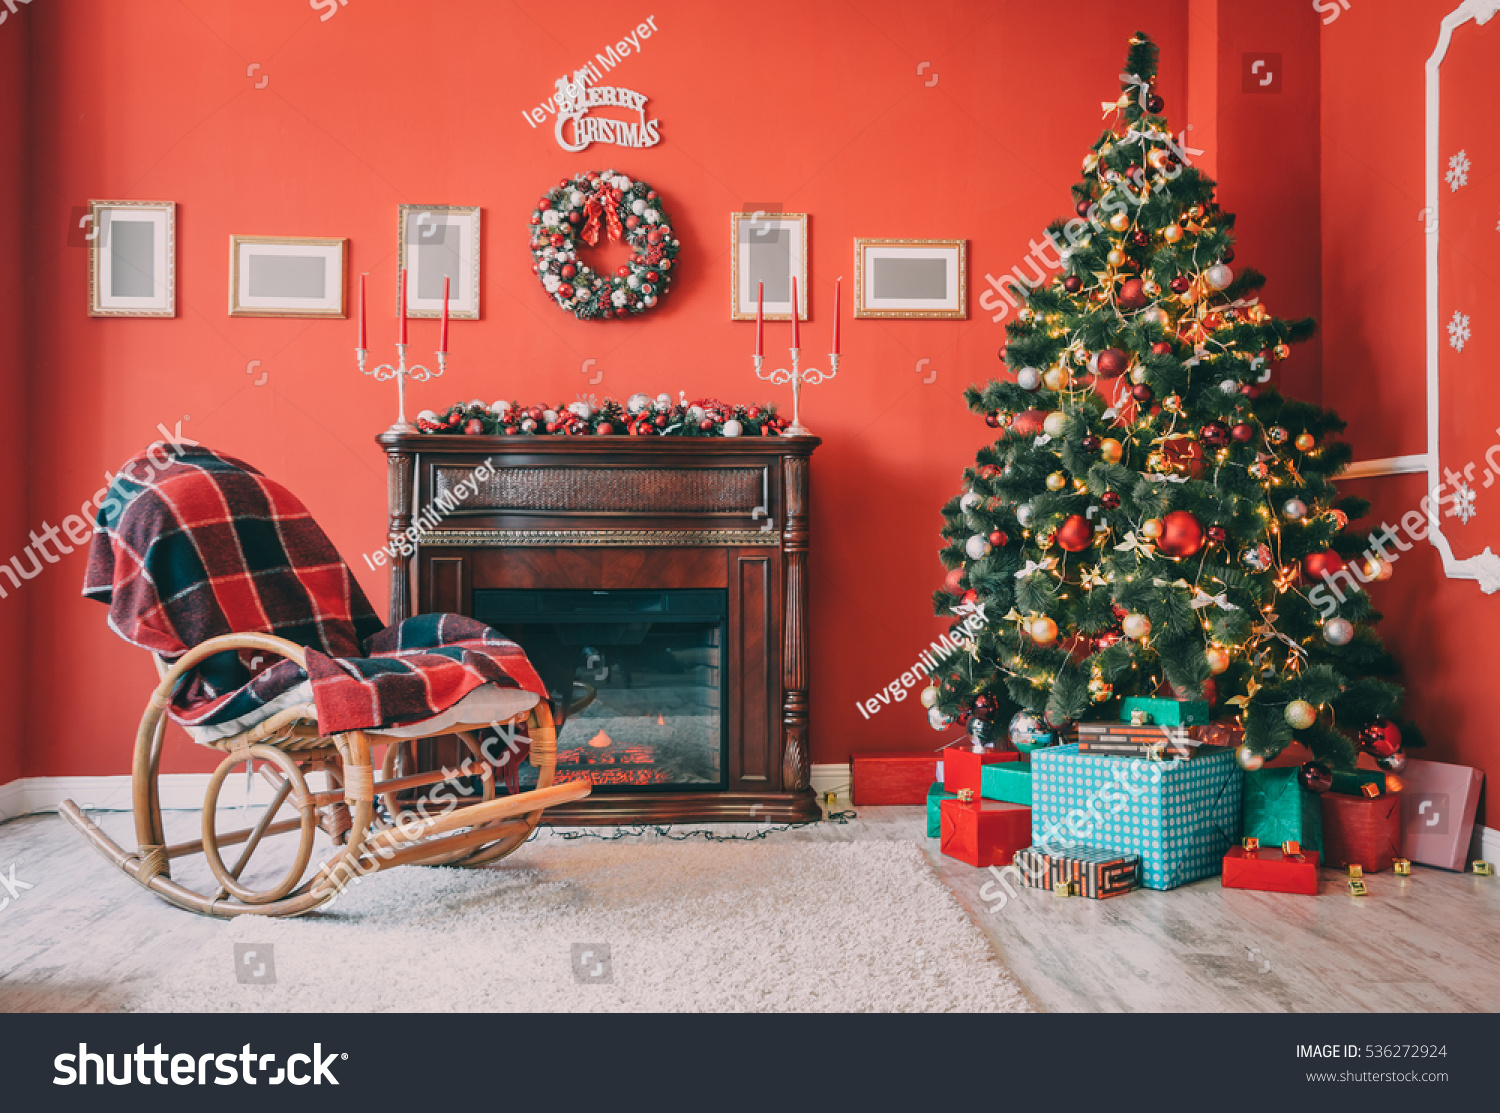 Christmas Rooms Online Image Photo Editor Shutterstock Editor Room Clip Art Emotions Clipart